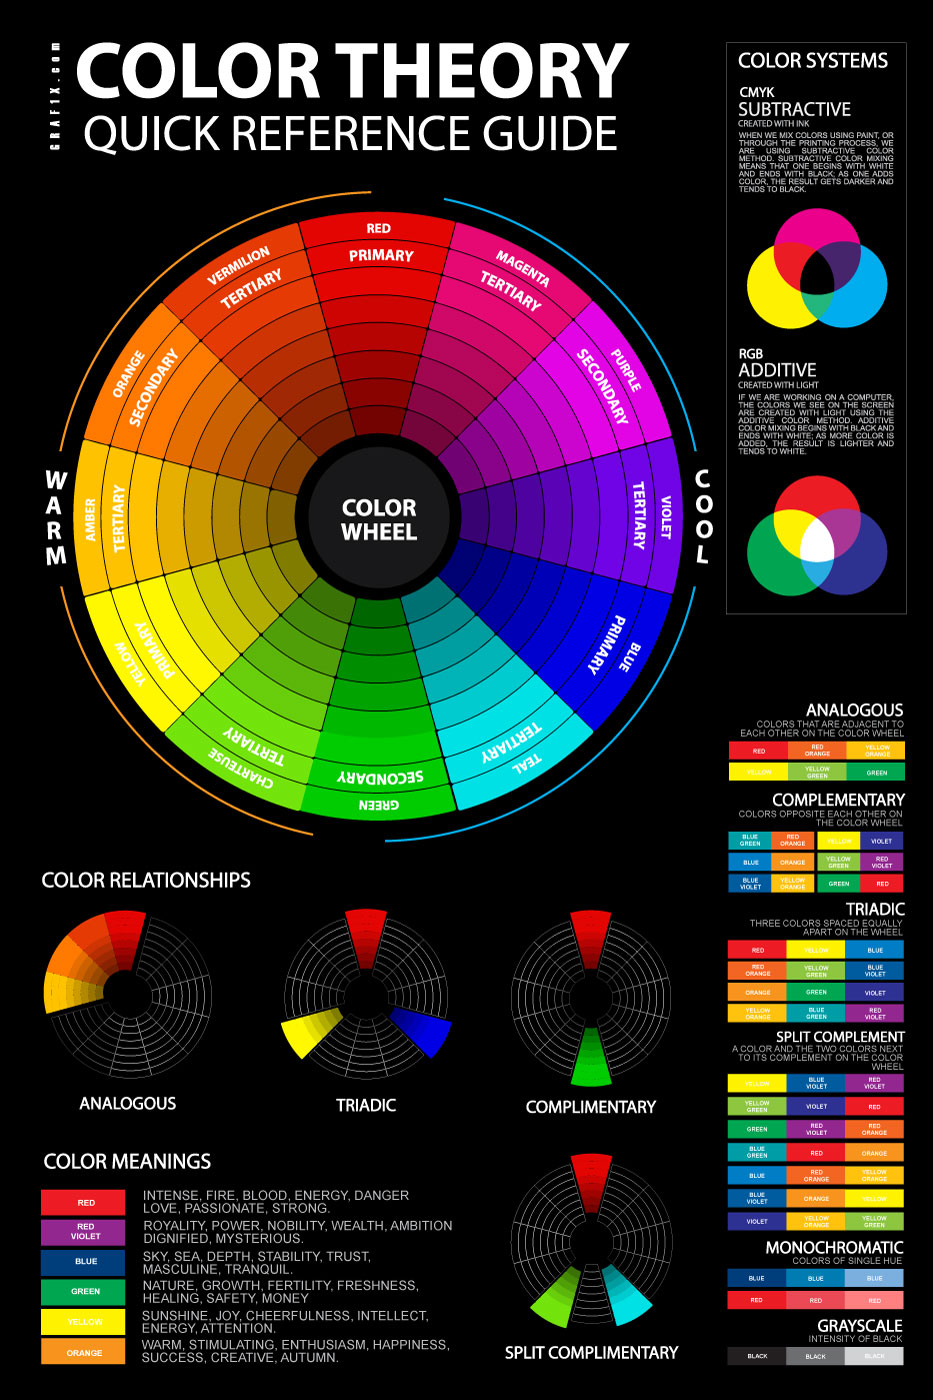 Reference guide for colour theory